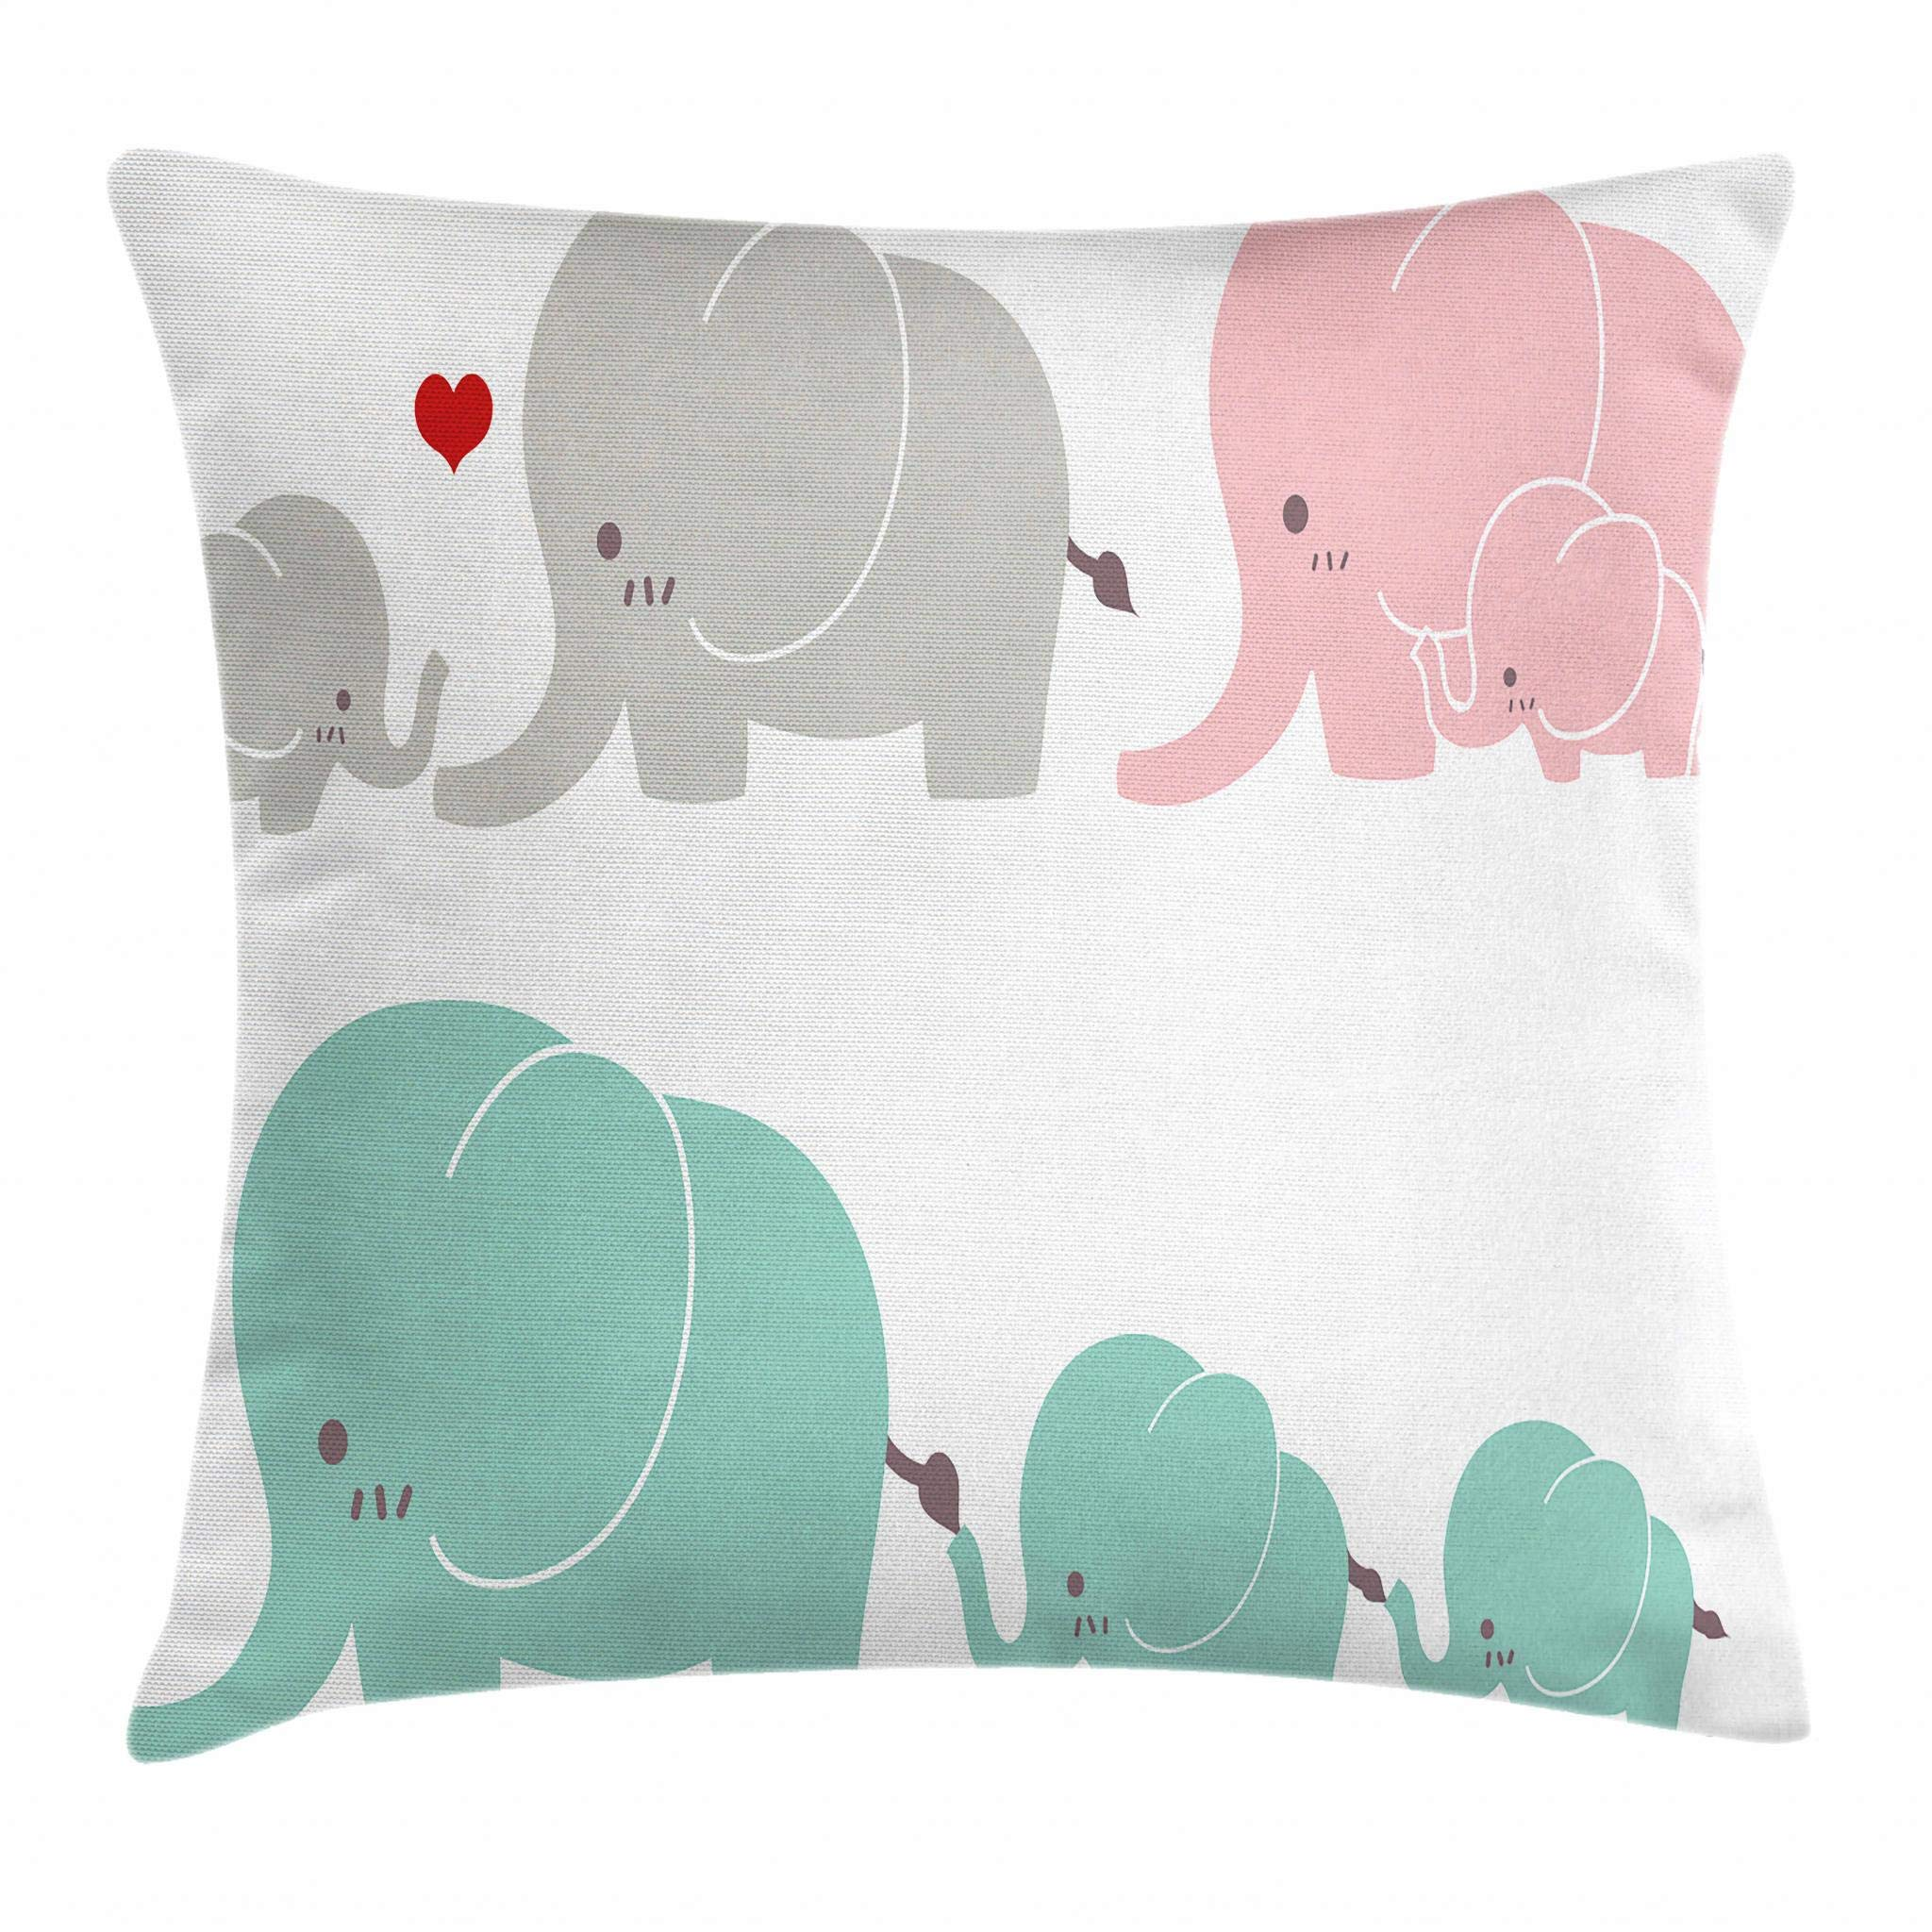 Ambesonne Nursery Throw Pillow Cushion Cover, Family Love Theme Cute Sweet Elephants Mother's Day Theme Baby Children, Decorative Square Accent Pillow Case, 18 X 18 Inches, Seafoam Pale Pink Gray